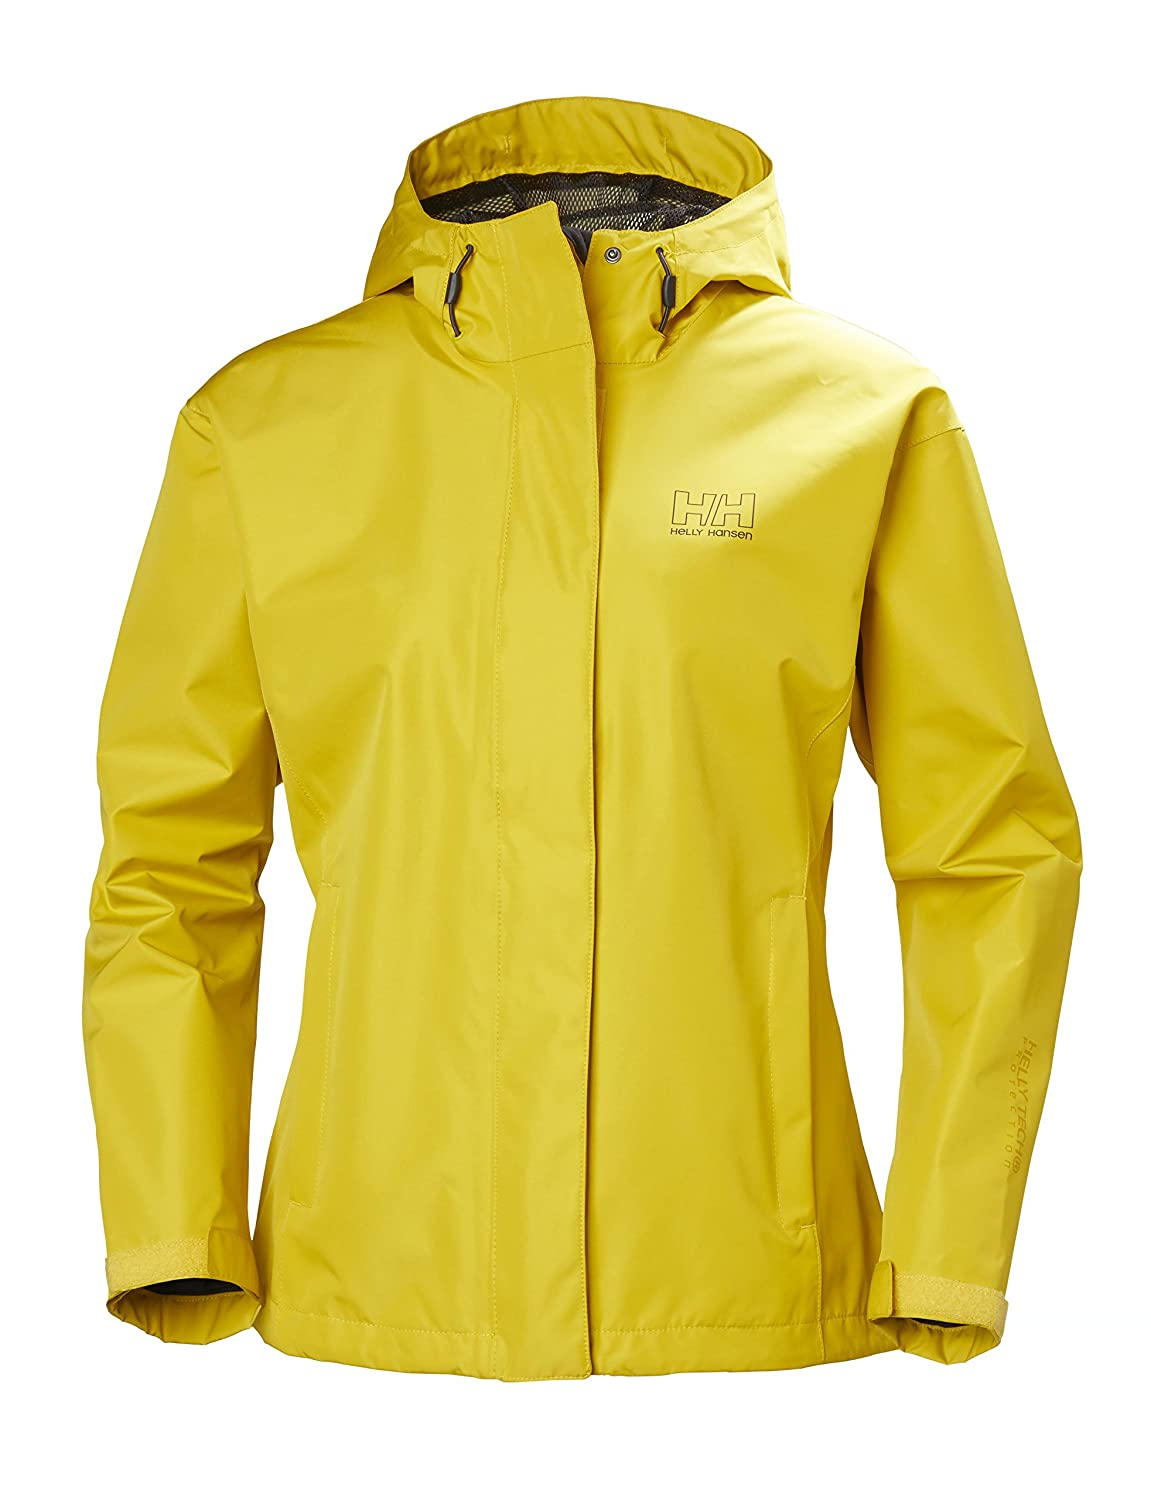 351 Sulphur Helly Hansen Women's Seven J Jacket